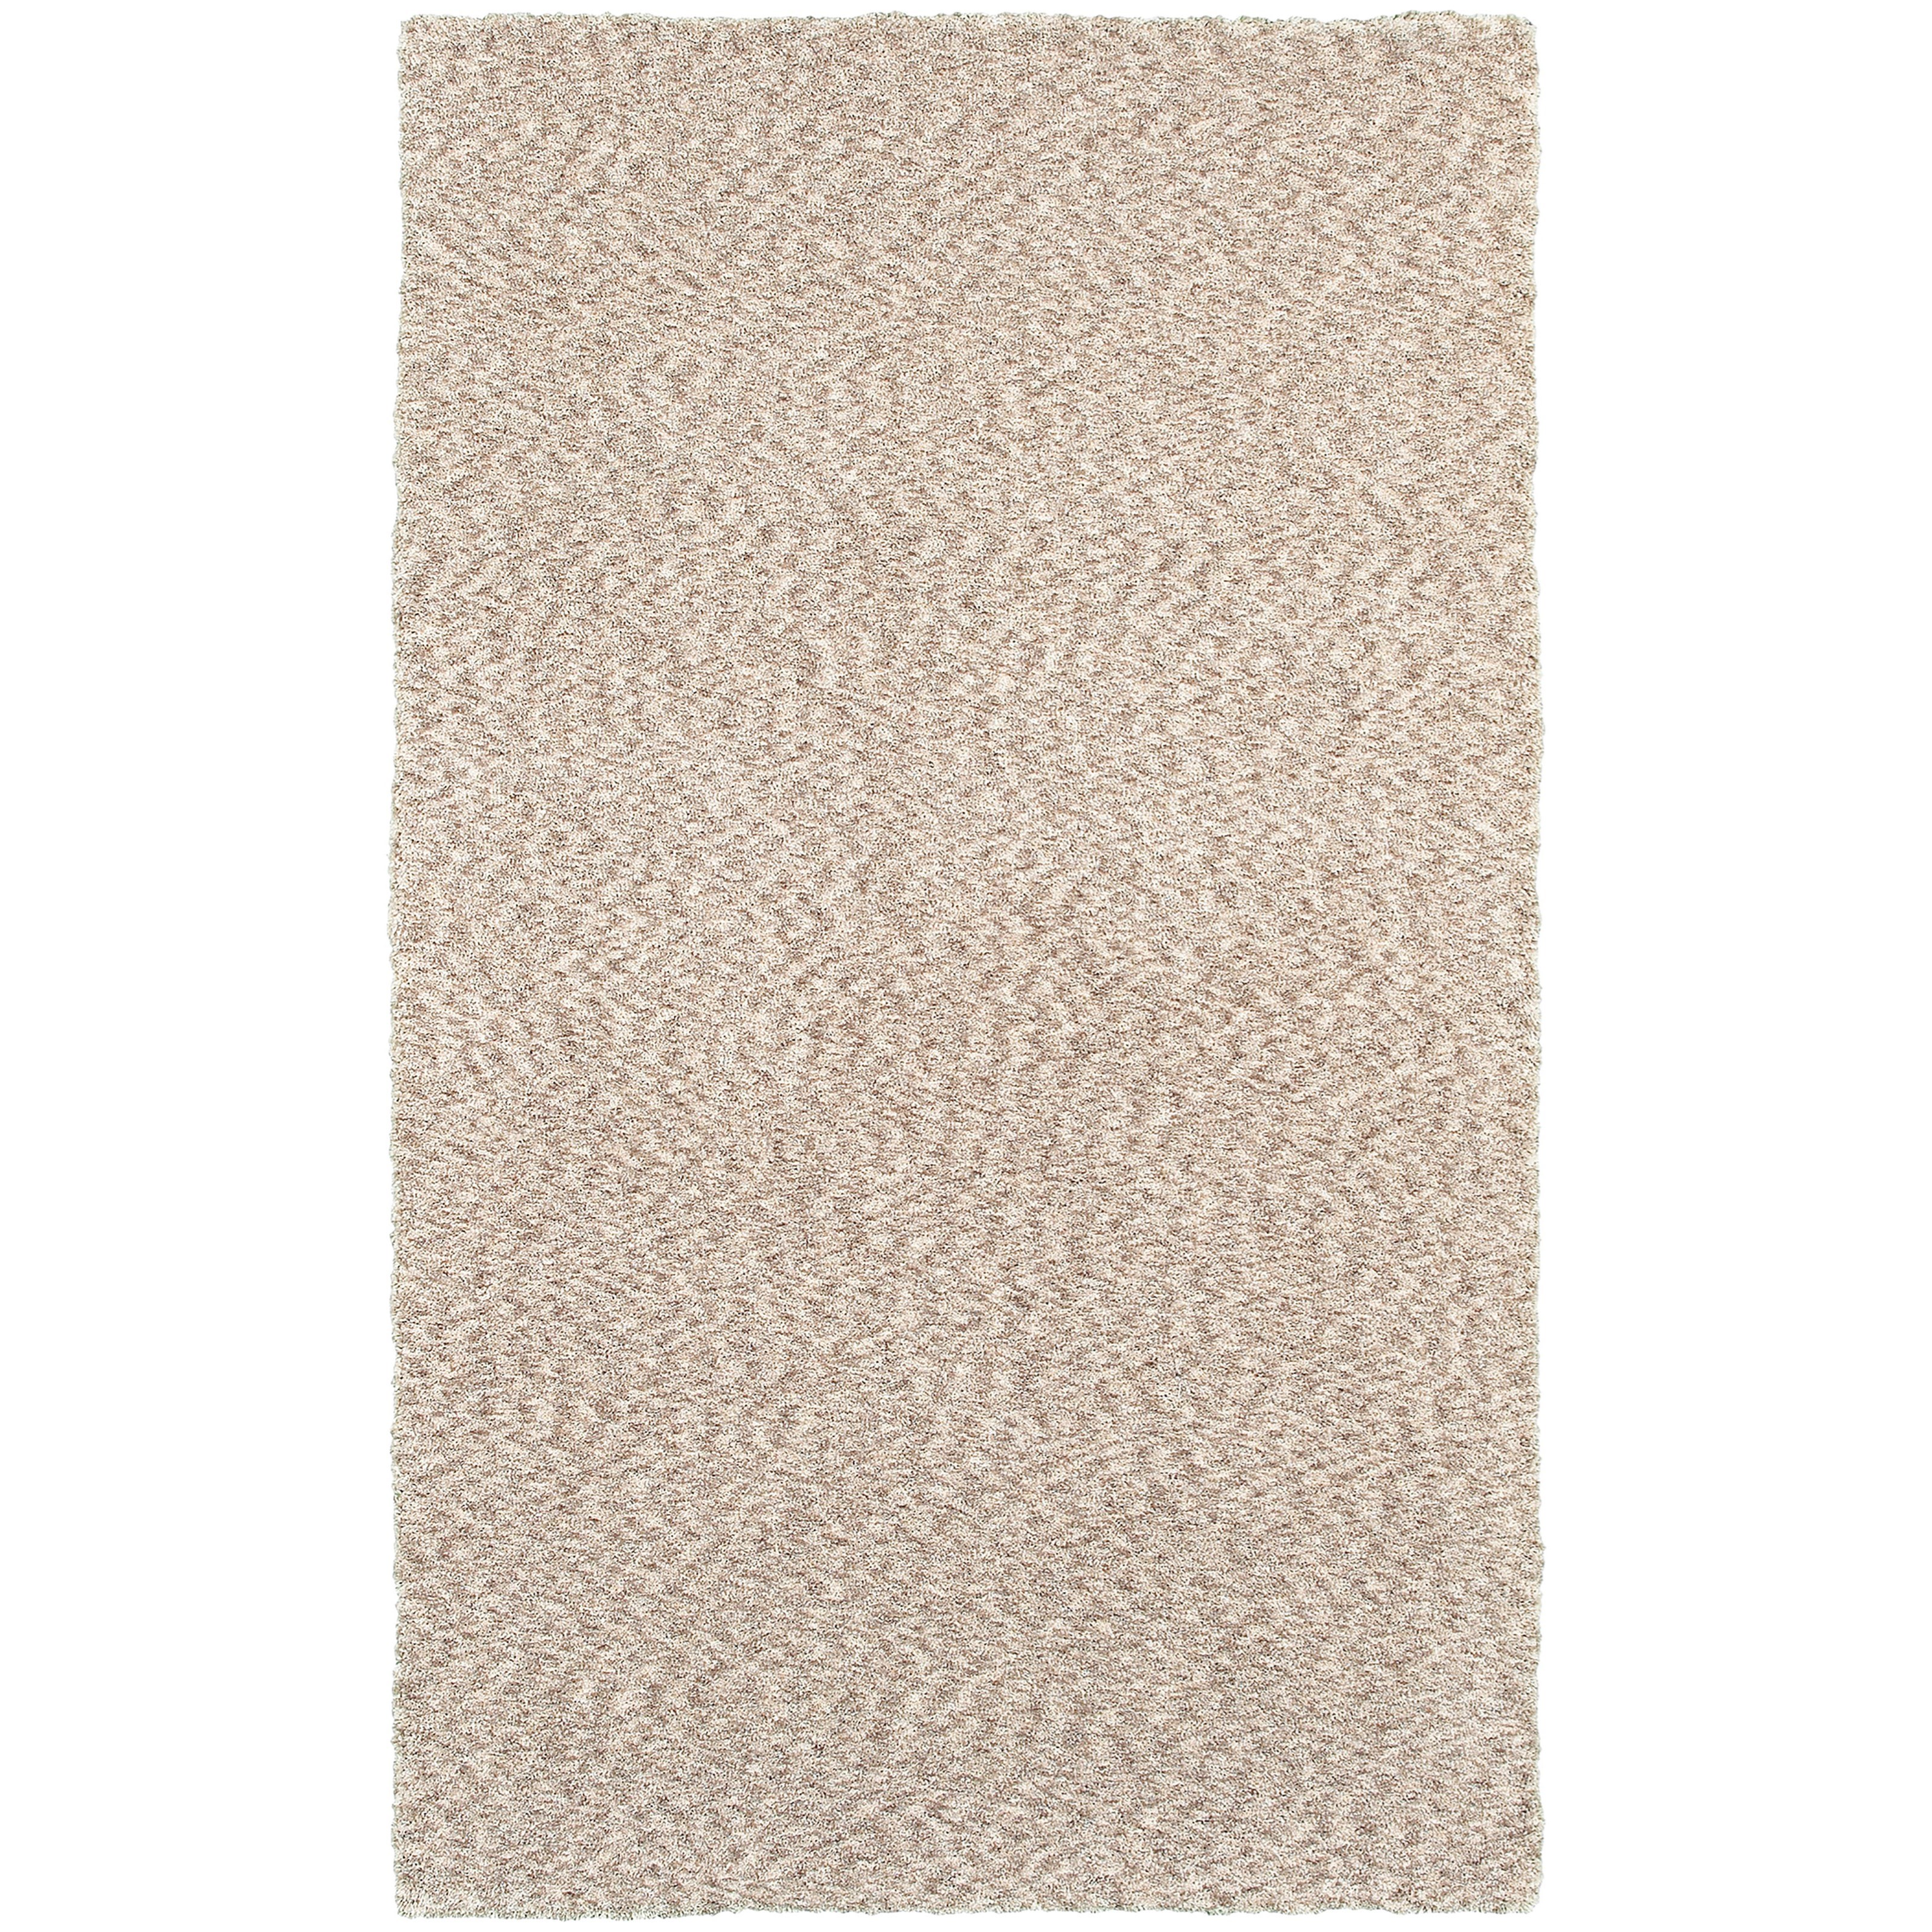 """Heavenly 8' 0"""" X 11' 0"""" Rectangle Area Rug by Oriental Weavers at Miller Waldrop Furniture and Decor"""